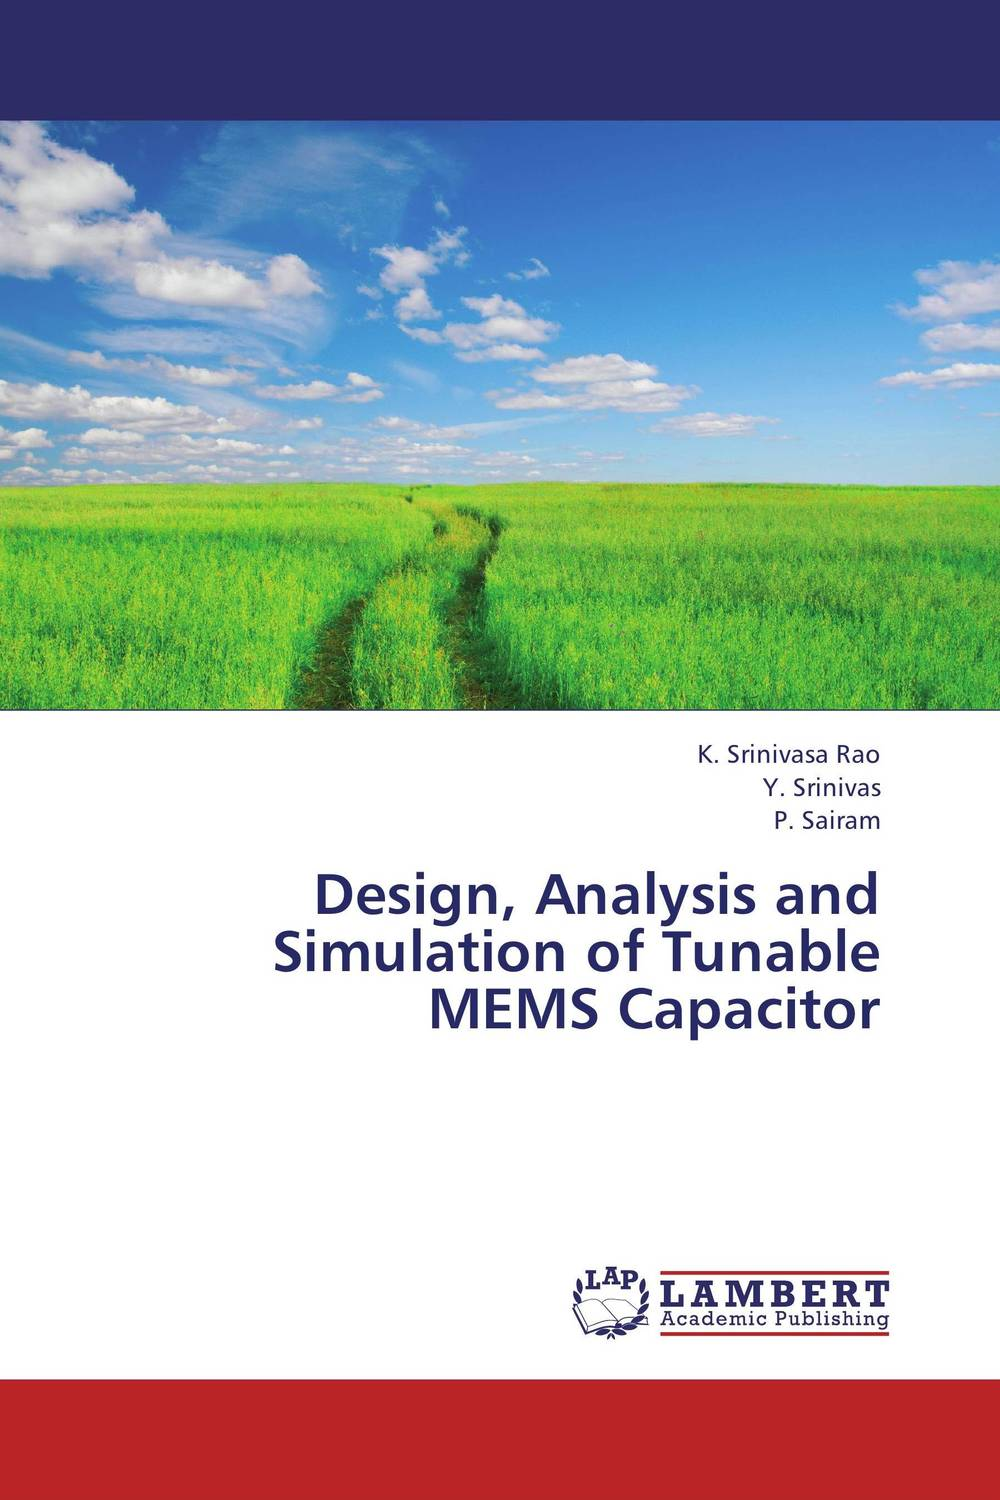 Design, Analysis and Simulation of Tunable MEMS Capacitor minhang bao analysis and design principles of mems devices